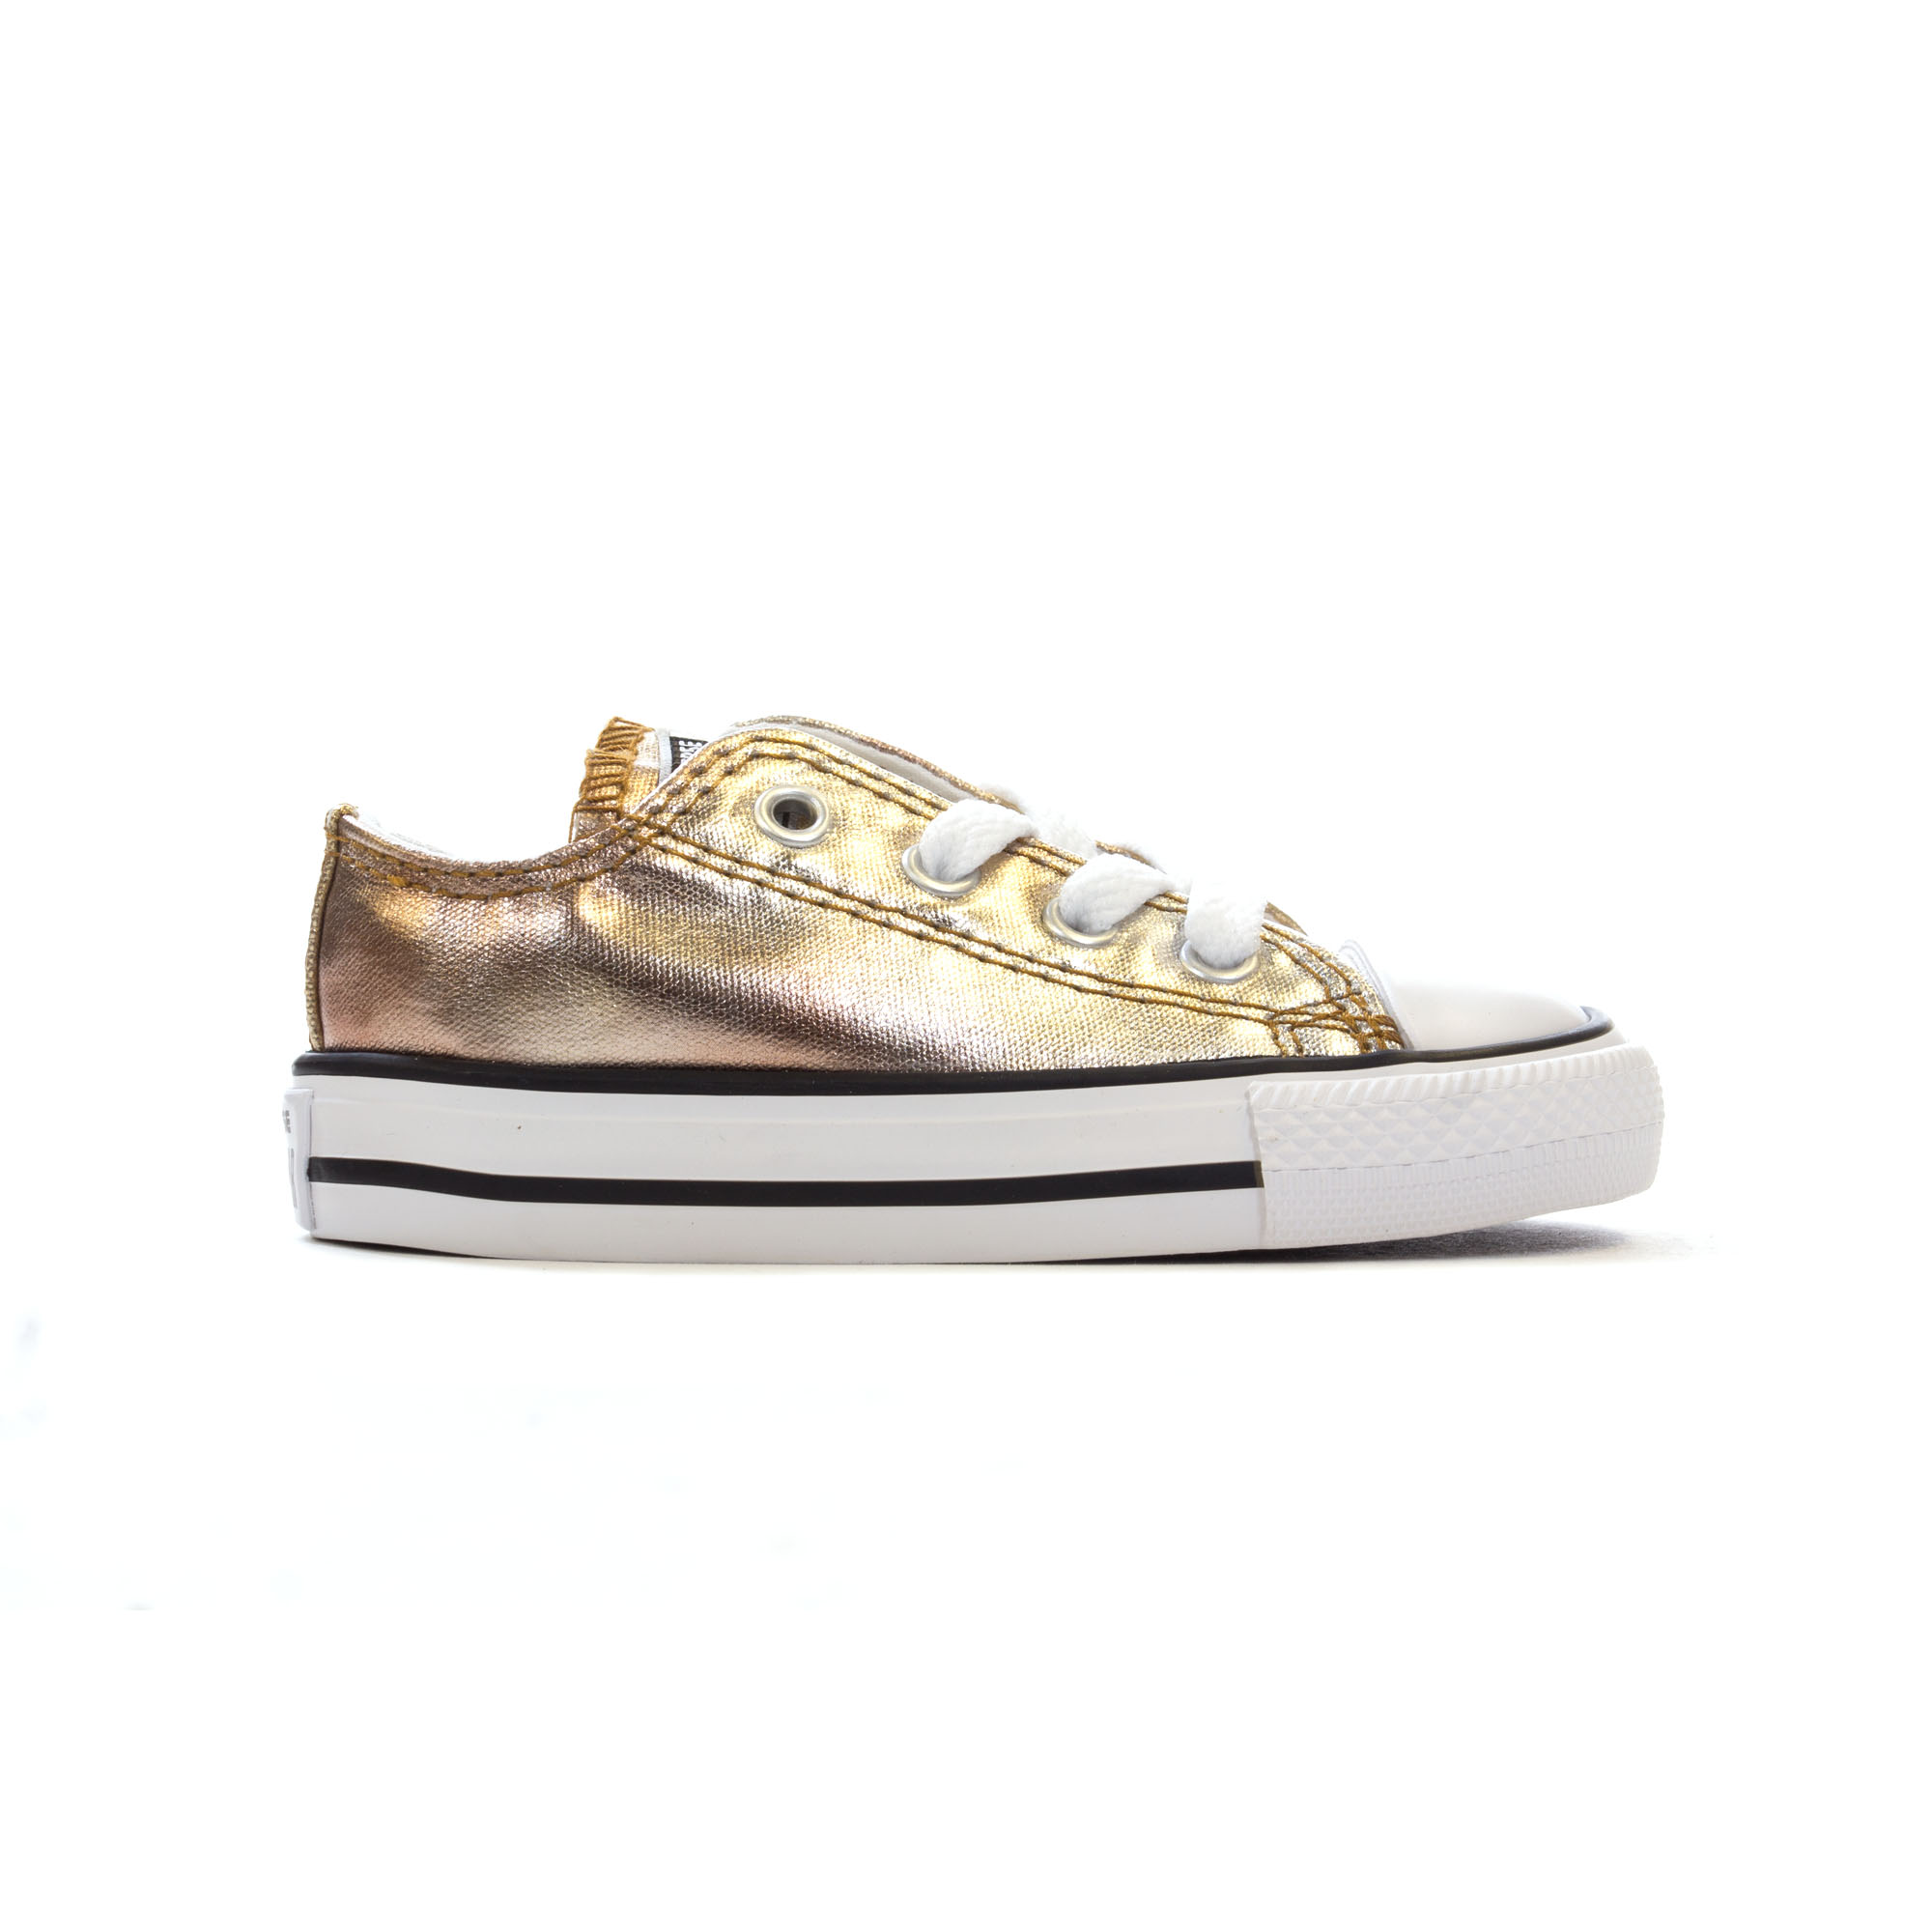 bdb56243bc9f Details about Converse Chuck Taylor All Star Metallic Ox Infant Kids  Trainer Shoe Silver Gold